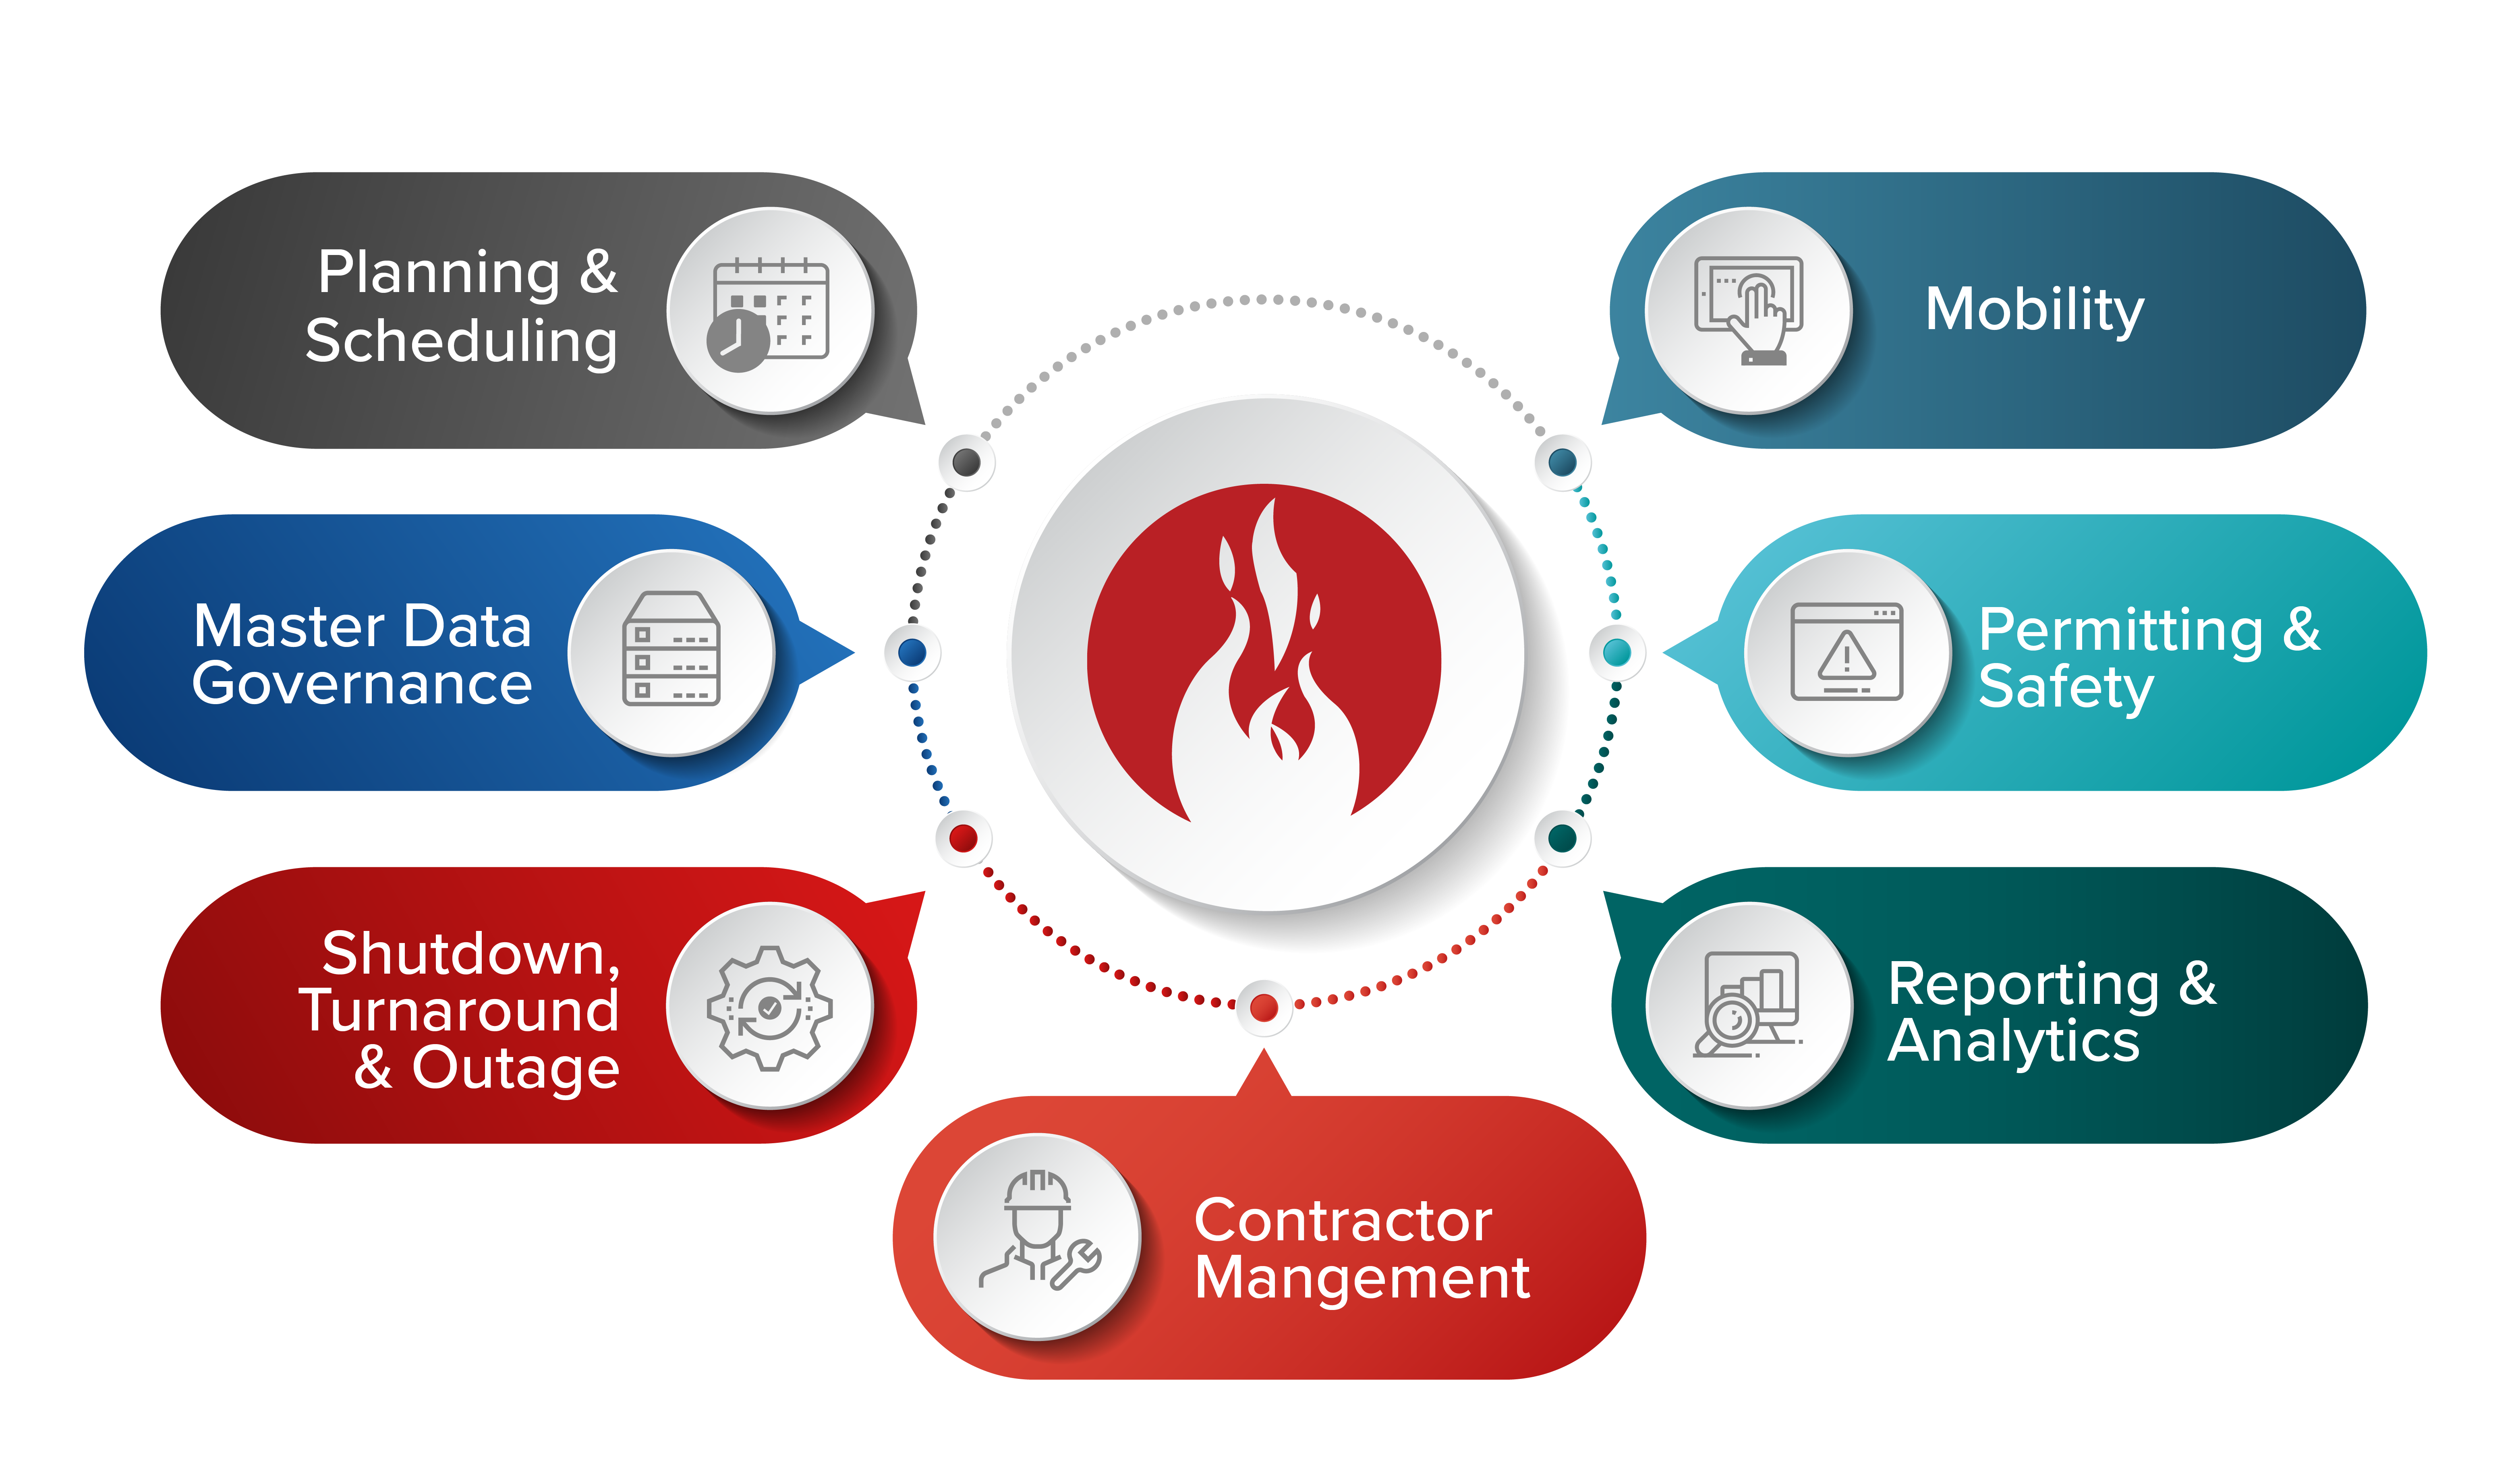 Diagram of the Prometheus Platform Modules: Planning and Scheduling, Master Data Governance, Shutdown, Turnaround, and Outage, Contractor Management, Reporting & Analytics, Permitting & Safety, and Mobility.